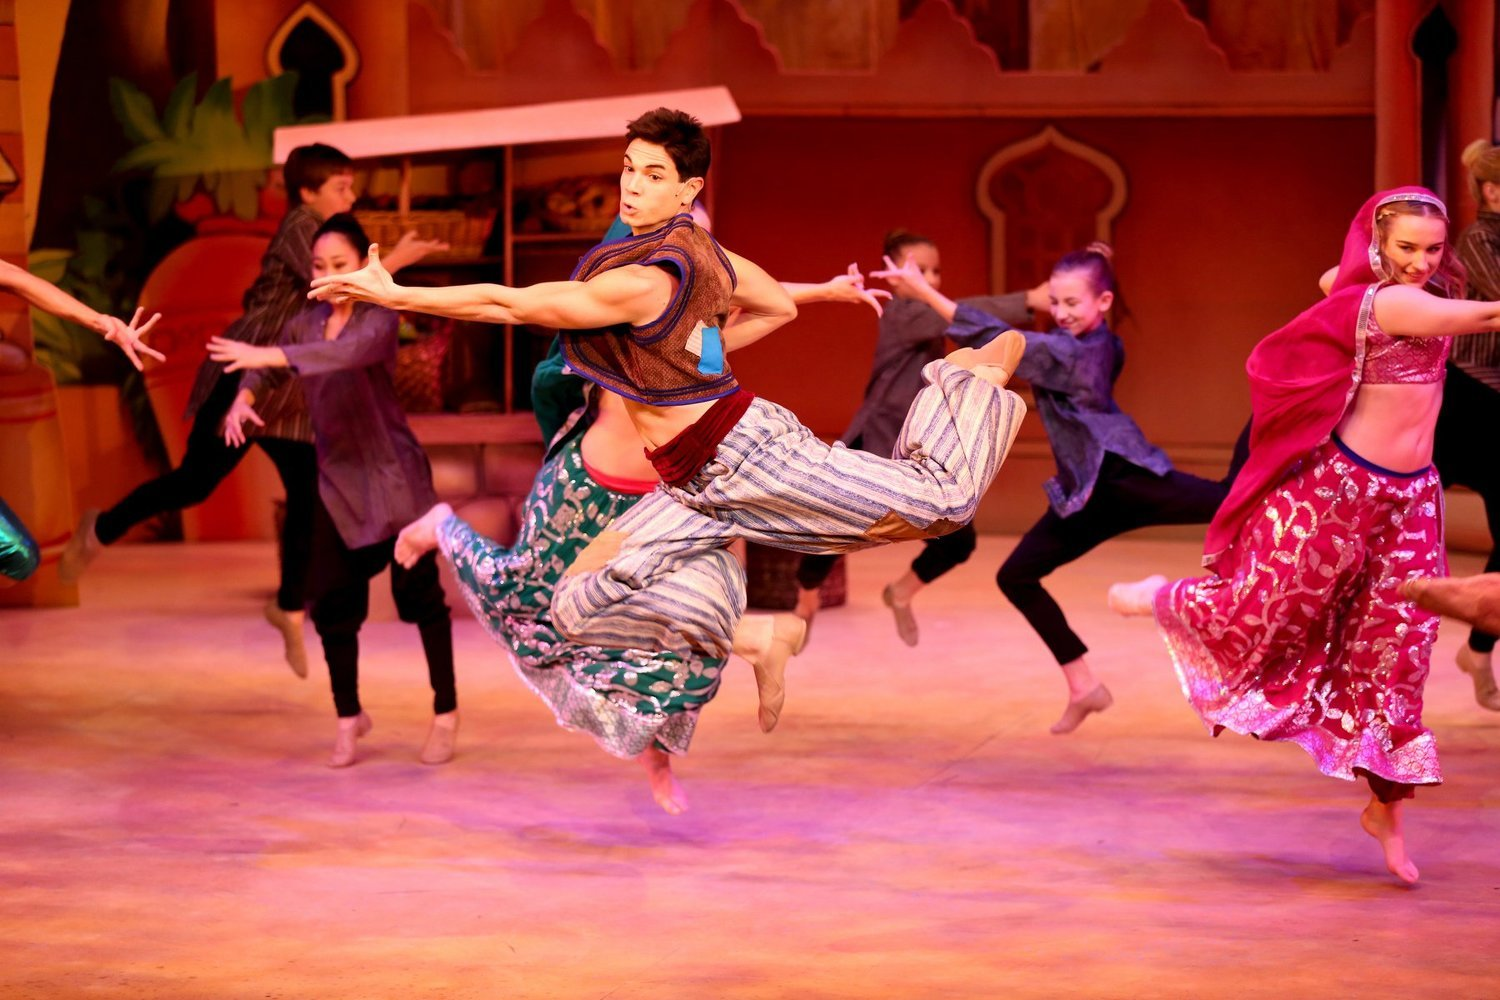 BWW Review: North Carolina Theatre's ALADDIN AND HIS WINTER WISH Pays Homage to Panto Tradition and Roasts Raleigh in a Fun, Knockabout Kind of Way